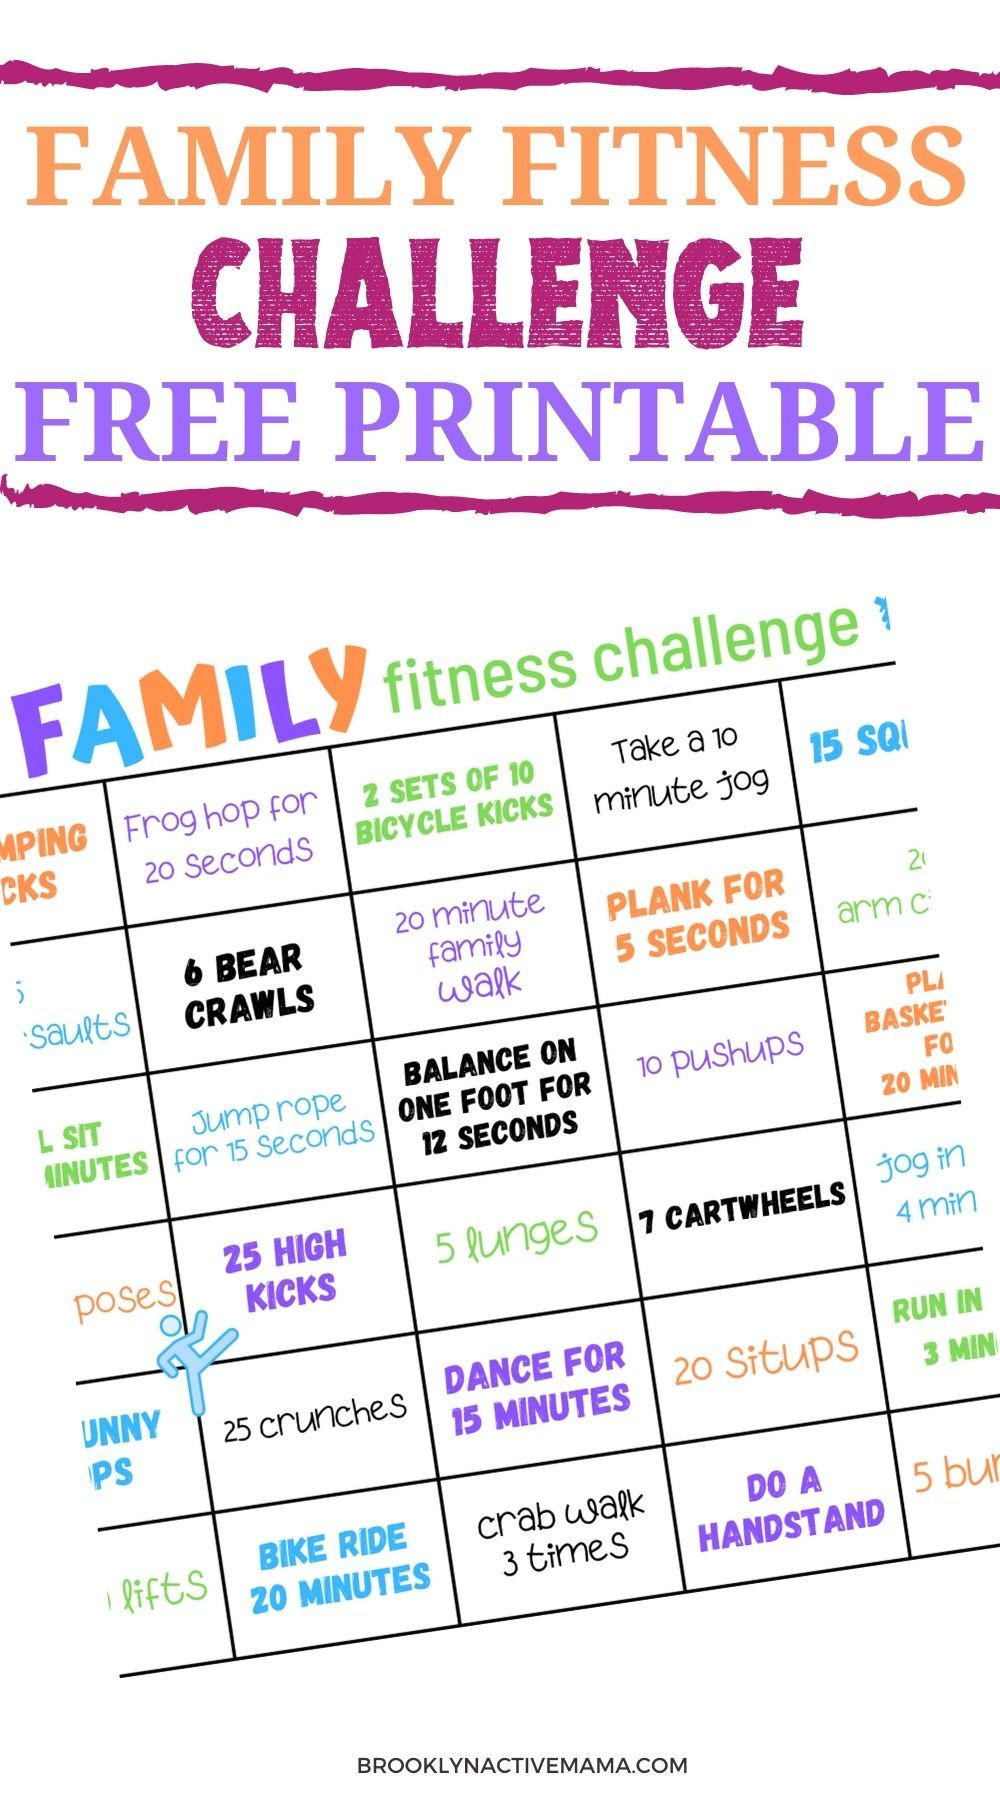 Family Fitness Challenge Free 30 Day Printable Family Fitness Challenge Family Fitness Fun Workouts